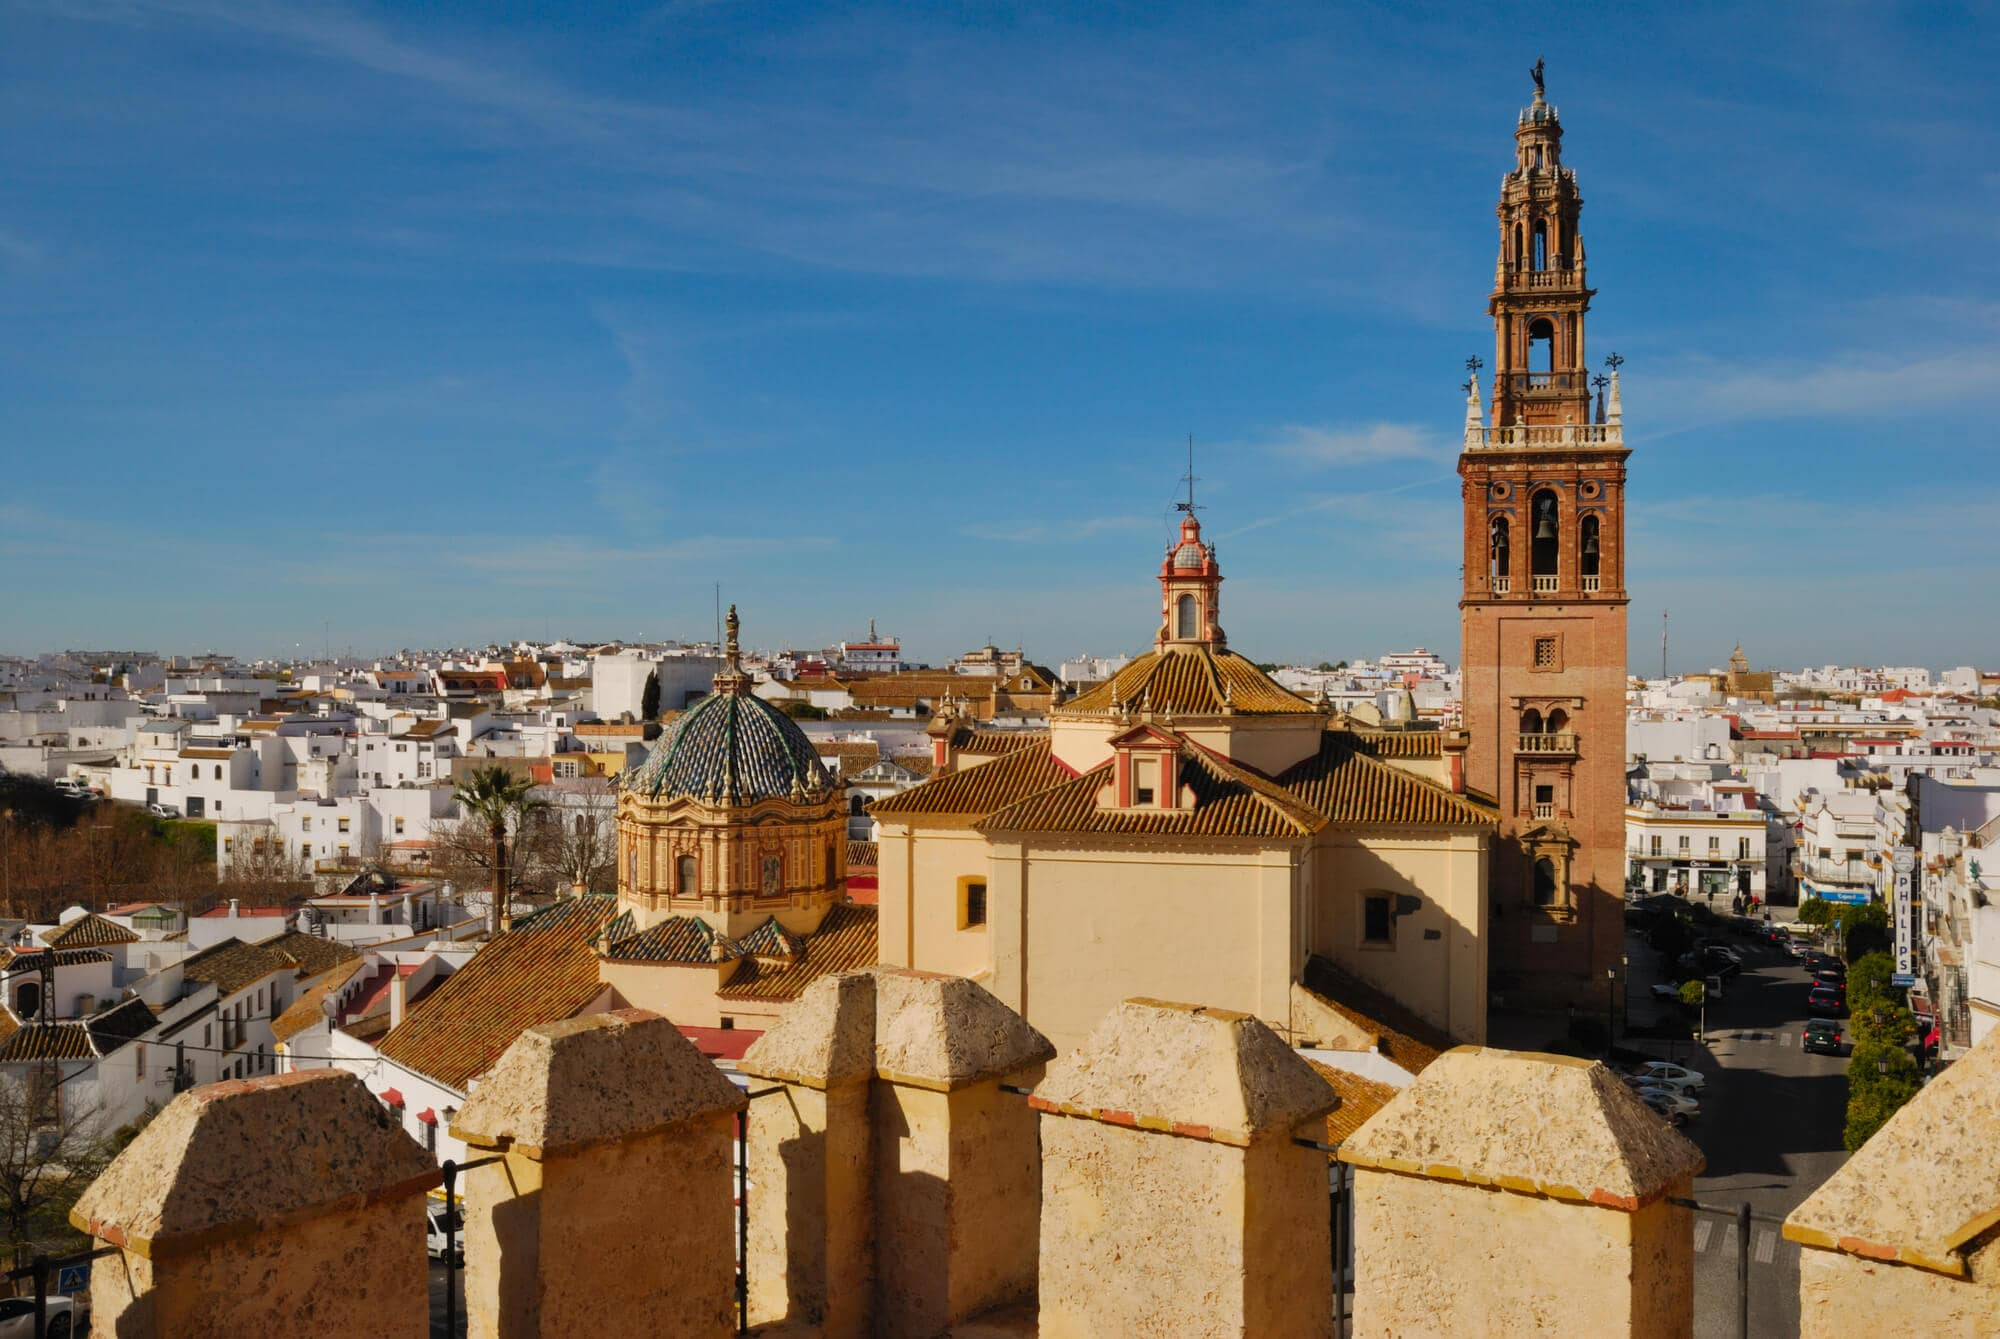 View from an old balcony over the white and golden rooftops in Carmona, Andalucía and a clear blue sky - A hidden gem and secret in Spain